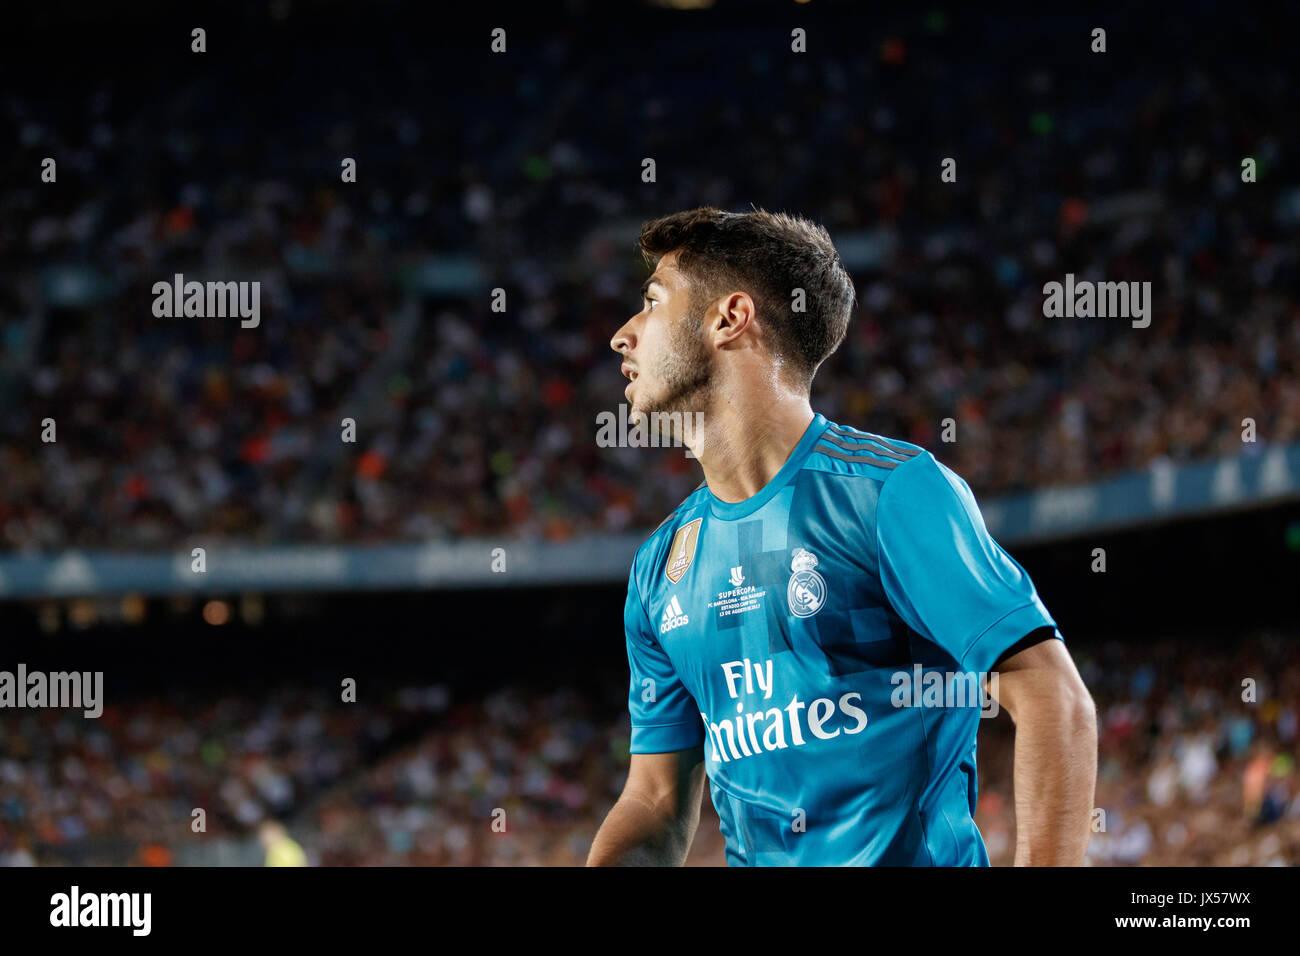 Camp Nou Stadium, Barcelona, Spain. 13th of August, 2017. Super Cup of Spain between FC Barcelona and Real Madrid. Asensio Credit: David Ramírez/Alamy Live News - Stock Image